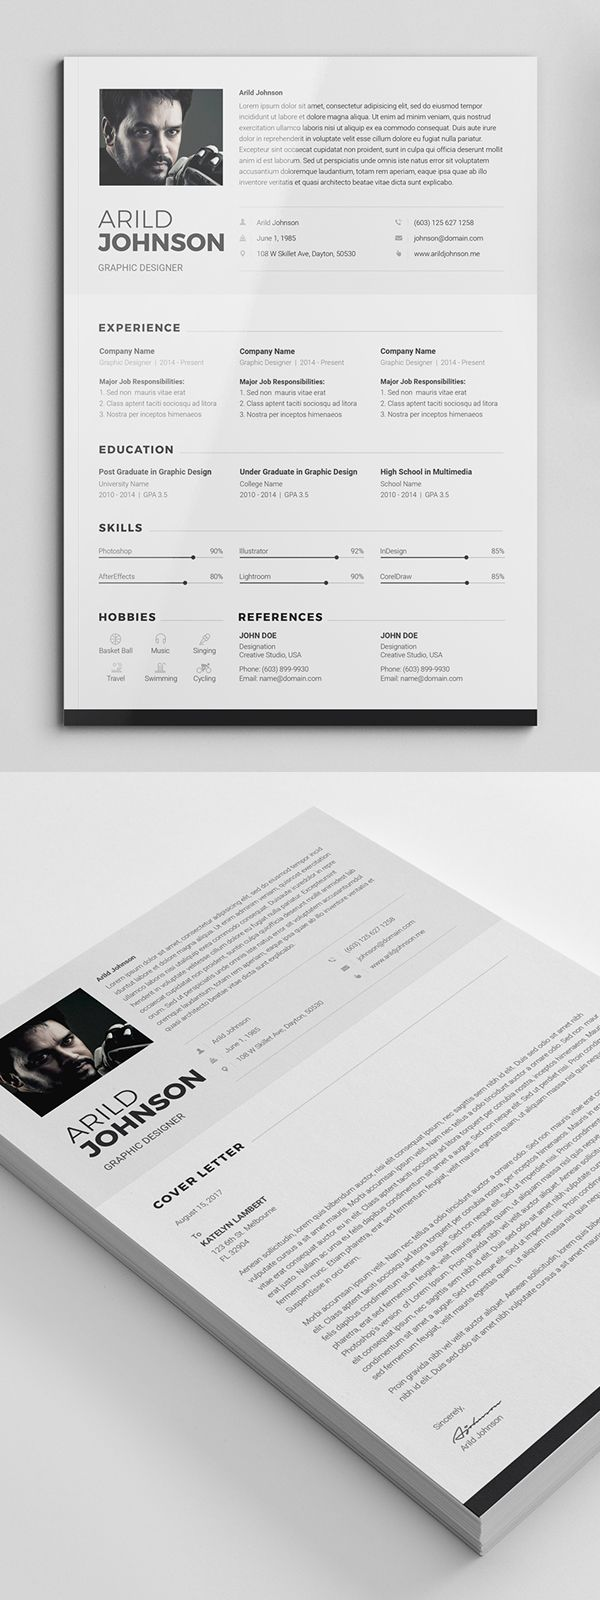 50 free resume templates best of 2018 6 downloadable template with experience academic examples dentist career objective